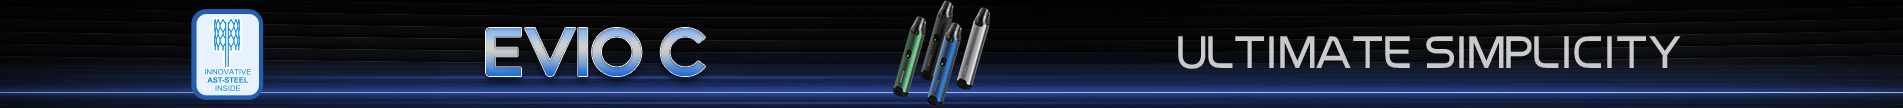 joyetech-sep_promotions